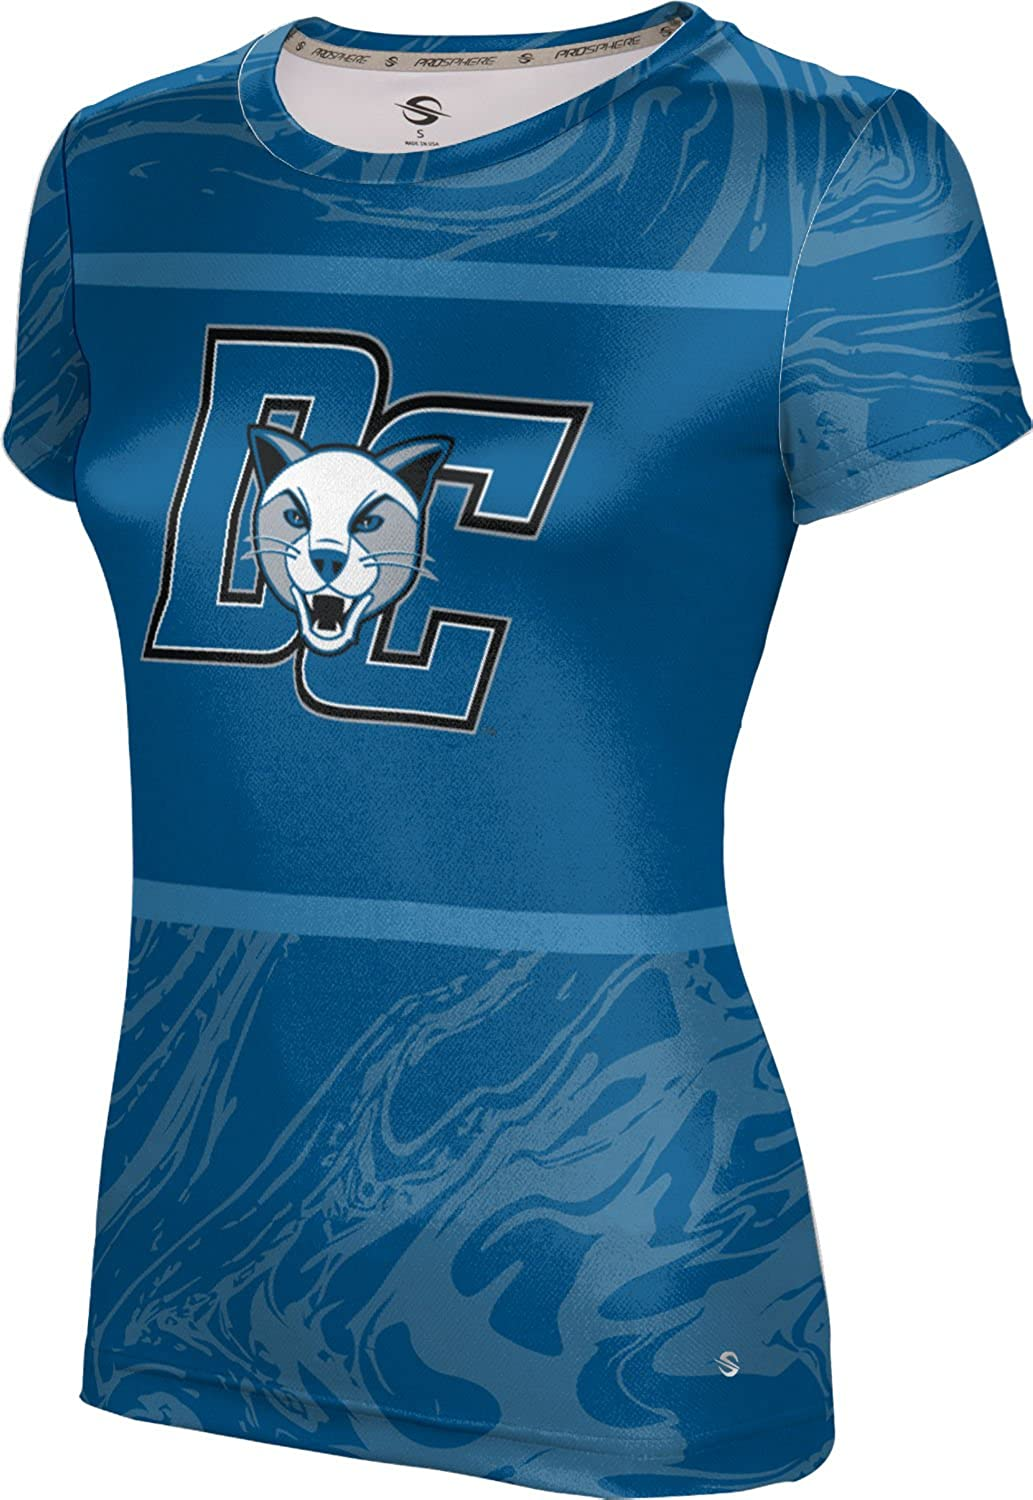 Ripple ProSphere Daemen College Girls Performance T-Shirt